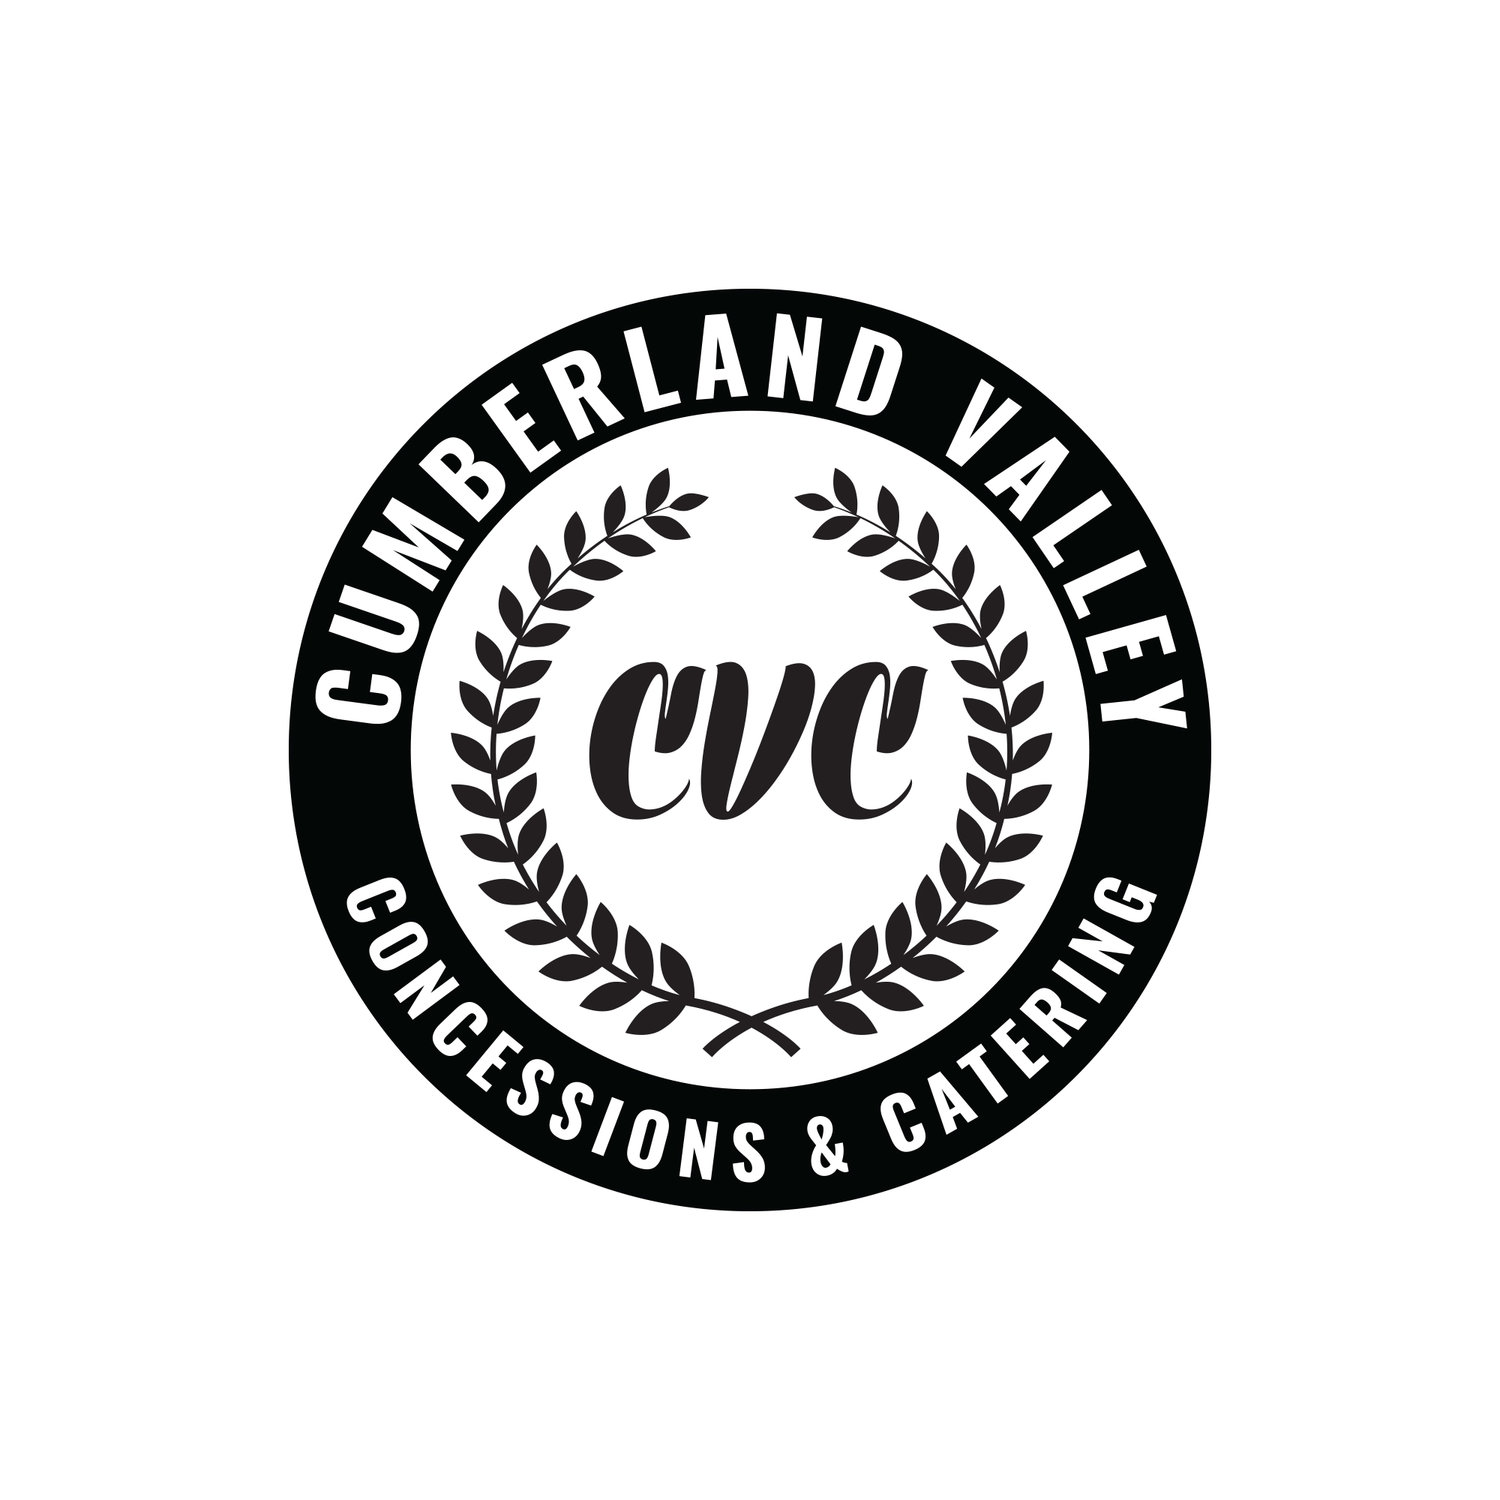 Cumberland Valley Concessions & Catering